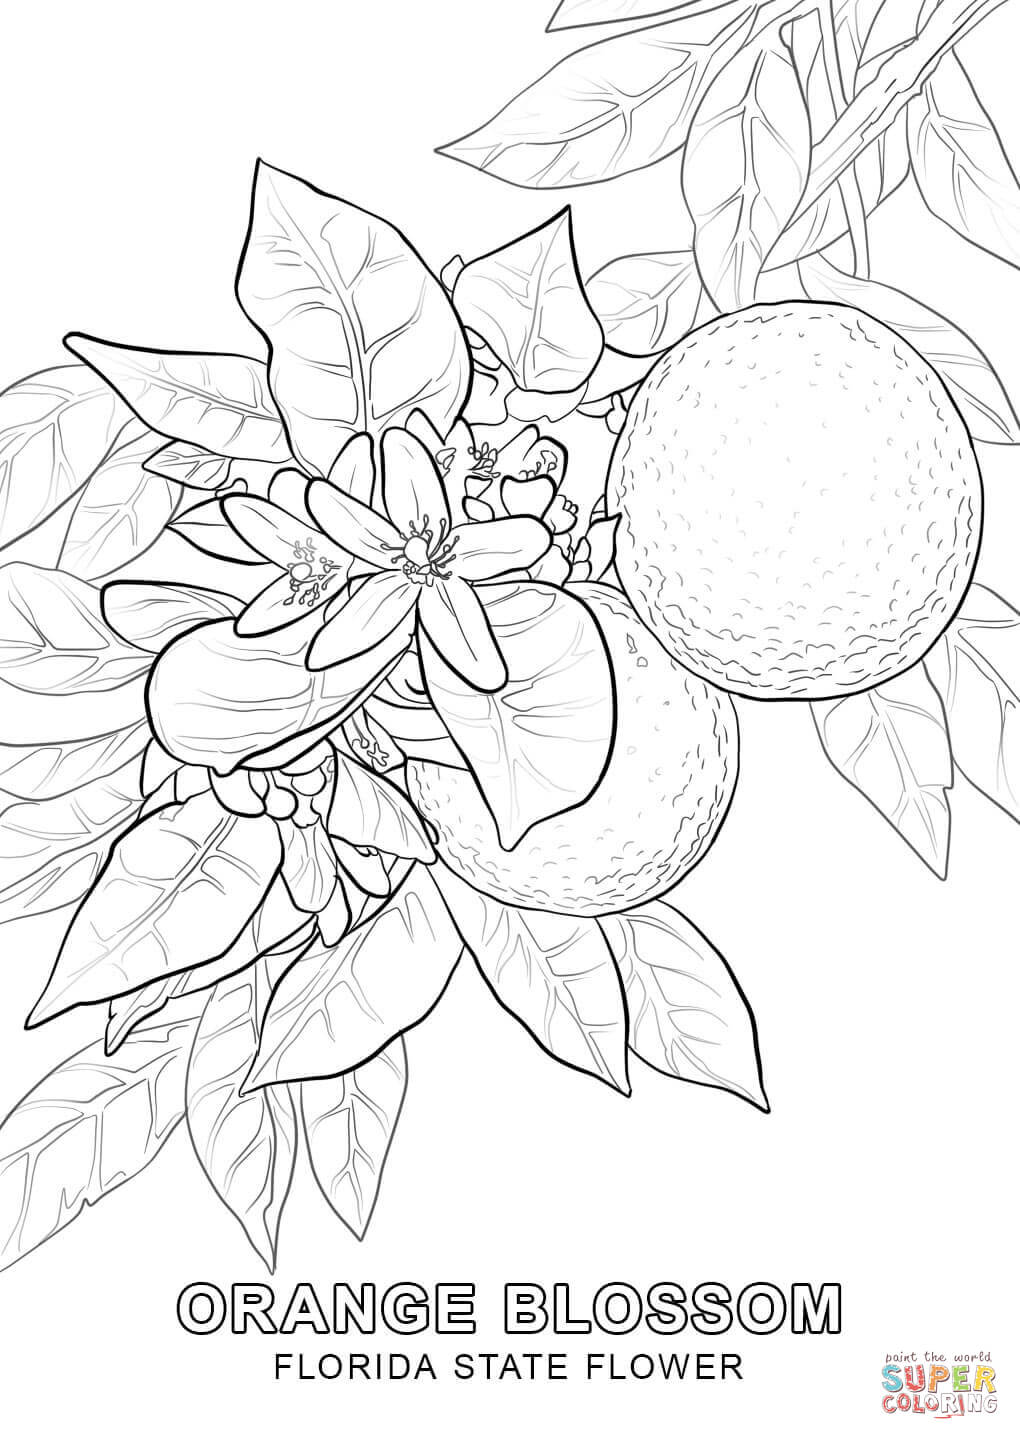 Florida State Flower coloring page | Free Printable Coloring Pages